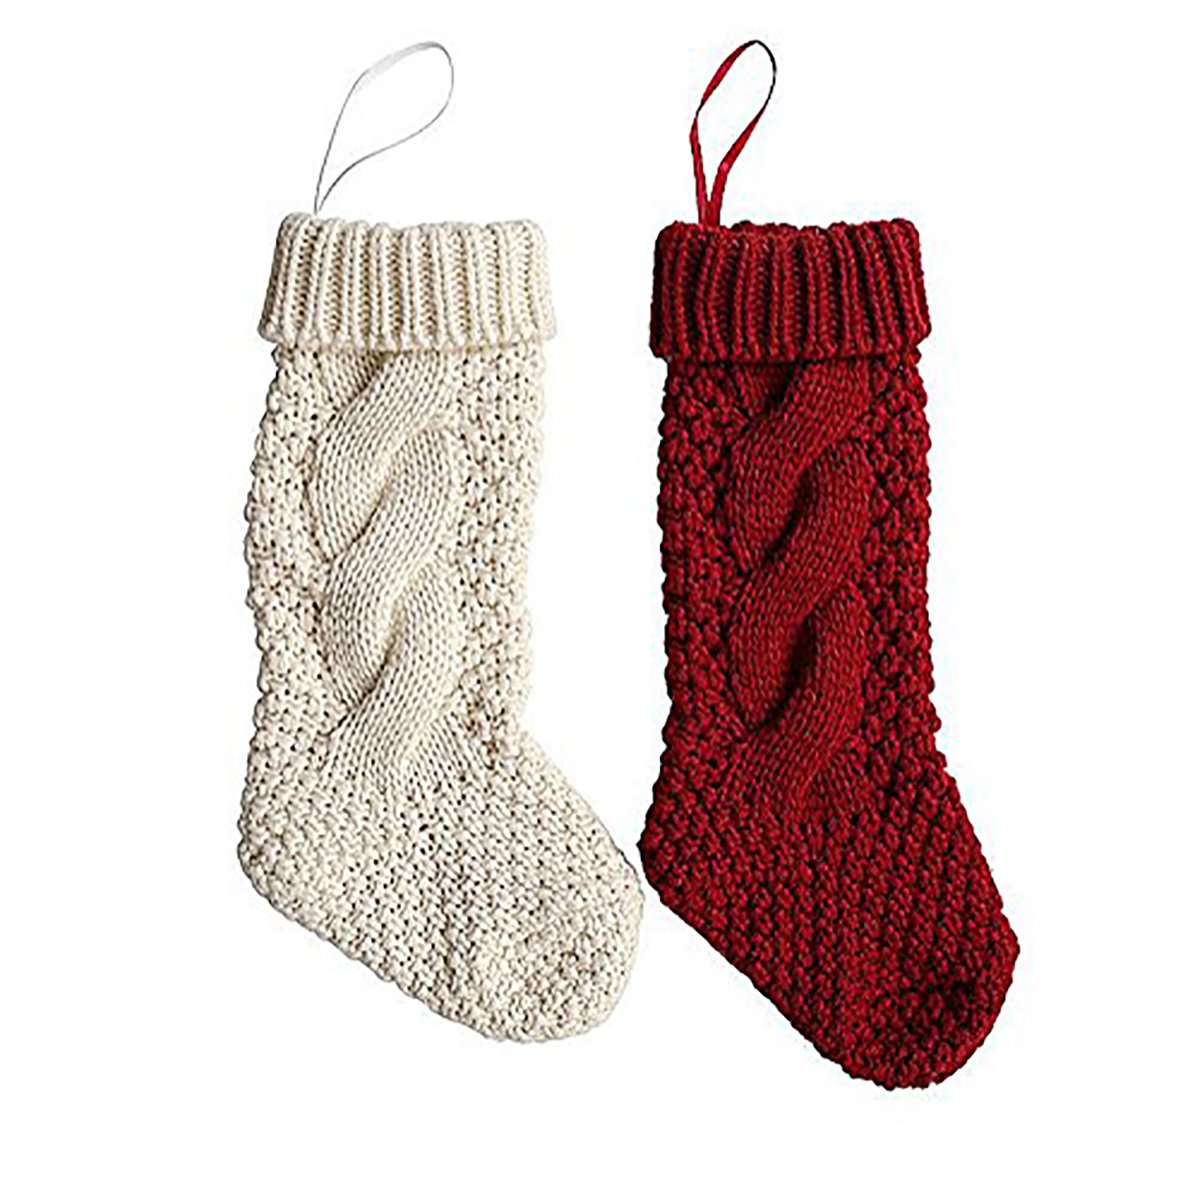 18'' Unique Knit Christmas Stockings,Burgundy and Ivory White,Hanging Ornament for Home Indoors (Red+White)